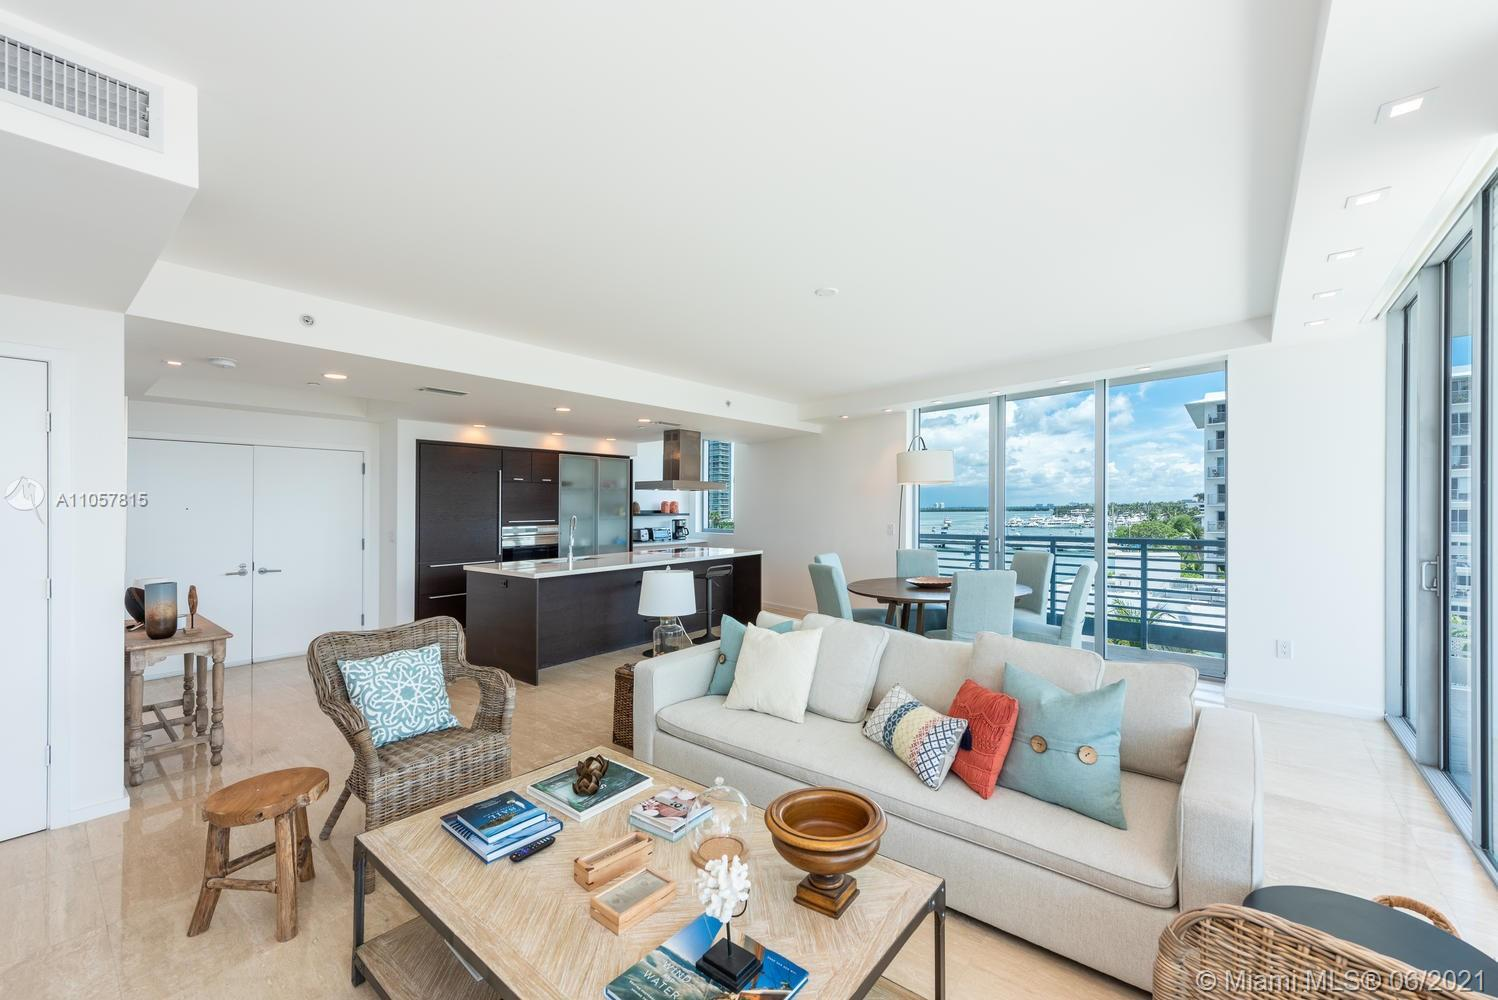 Spectacular and hard to find very spacious 3BR/3.5BA at Capri South Beach, an exclusive and peaceful